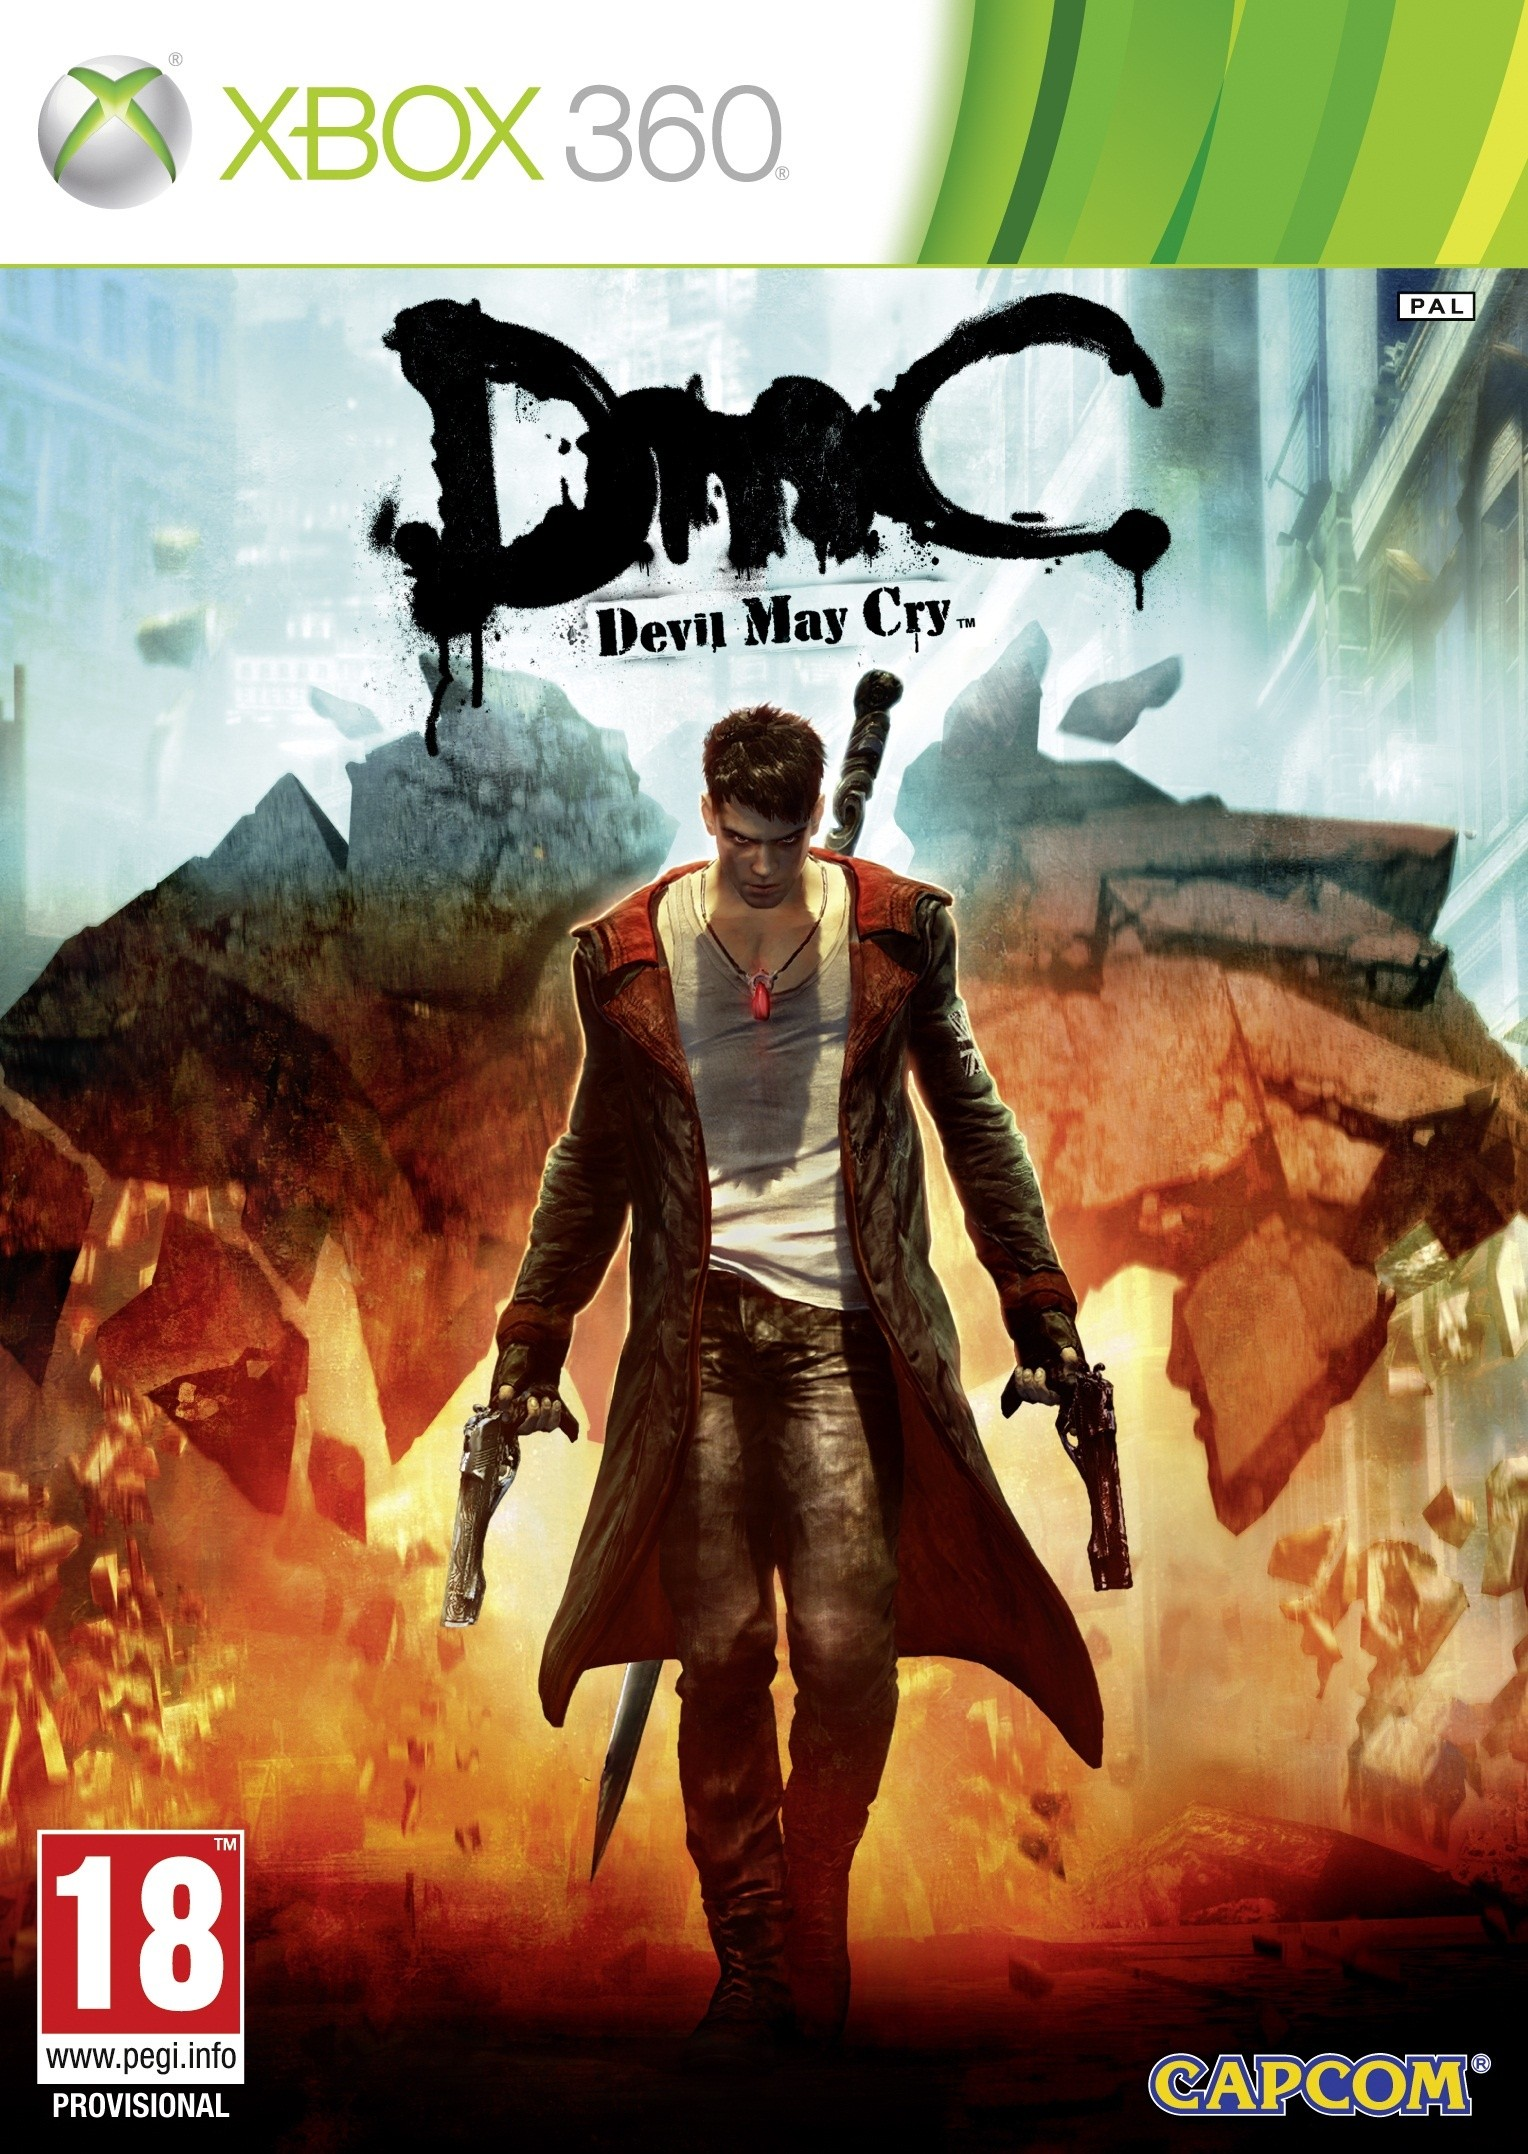 XBOX 360 - DmC: Devil May Cry